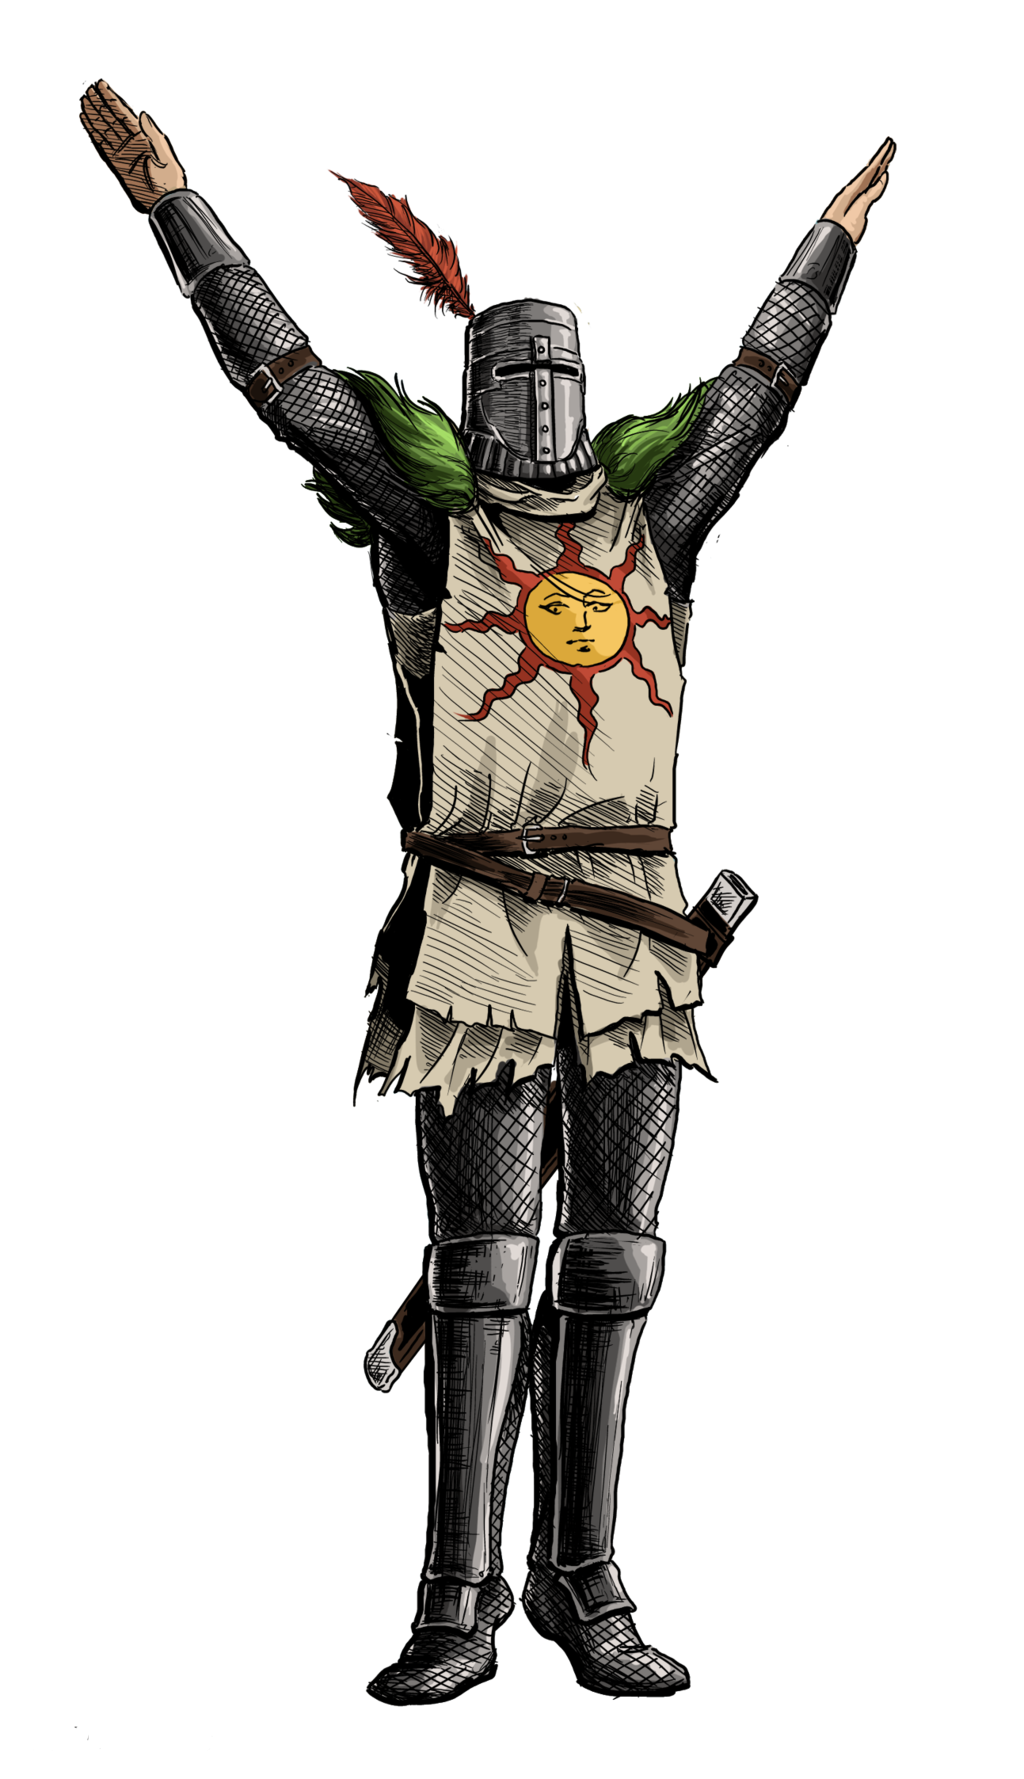 Praise the sun Solaire is getting an amiibo | gaming in 2019